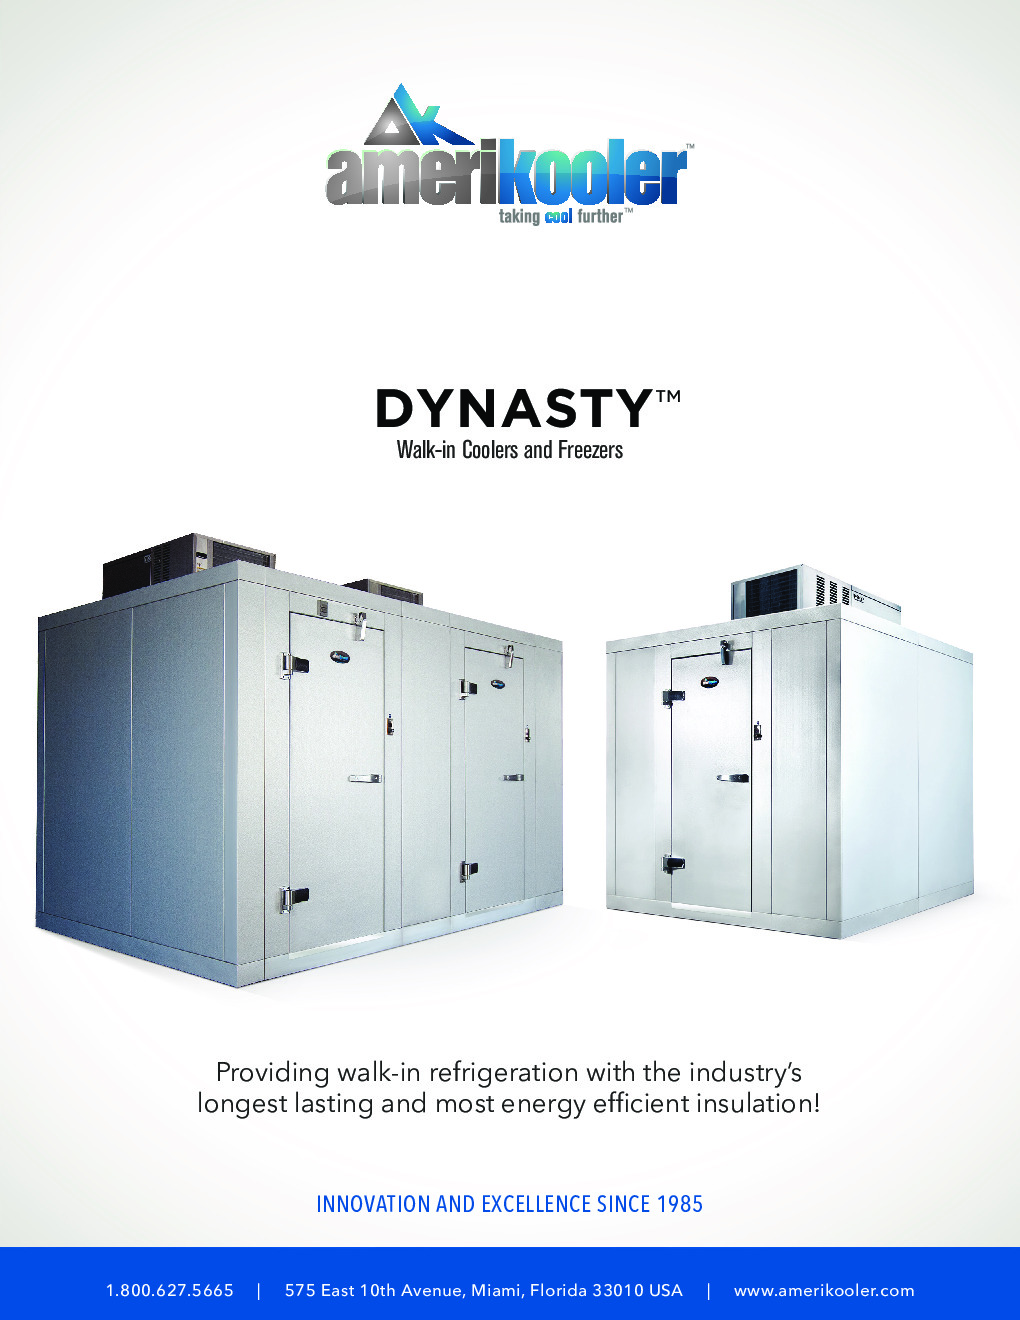 AmeriKooler DW081777N-8/9-SC 8' X 17' Walk-In Cooler, 9' L Cooler without Floor and 8' L Freezer, Self Contained